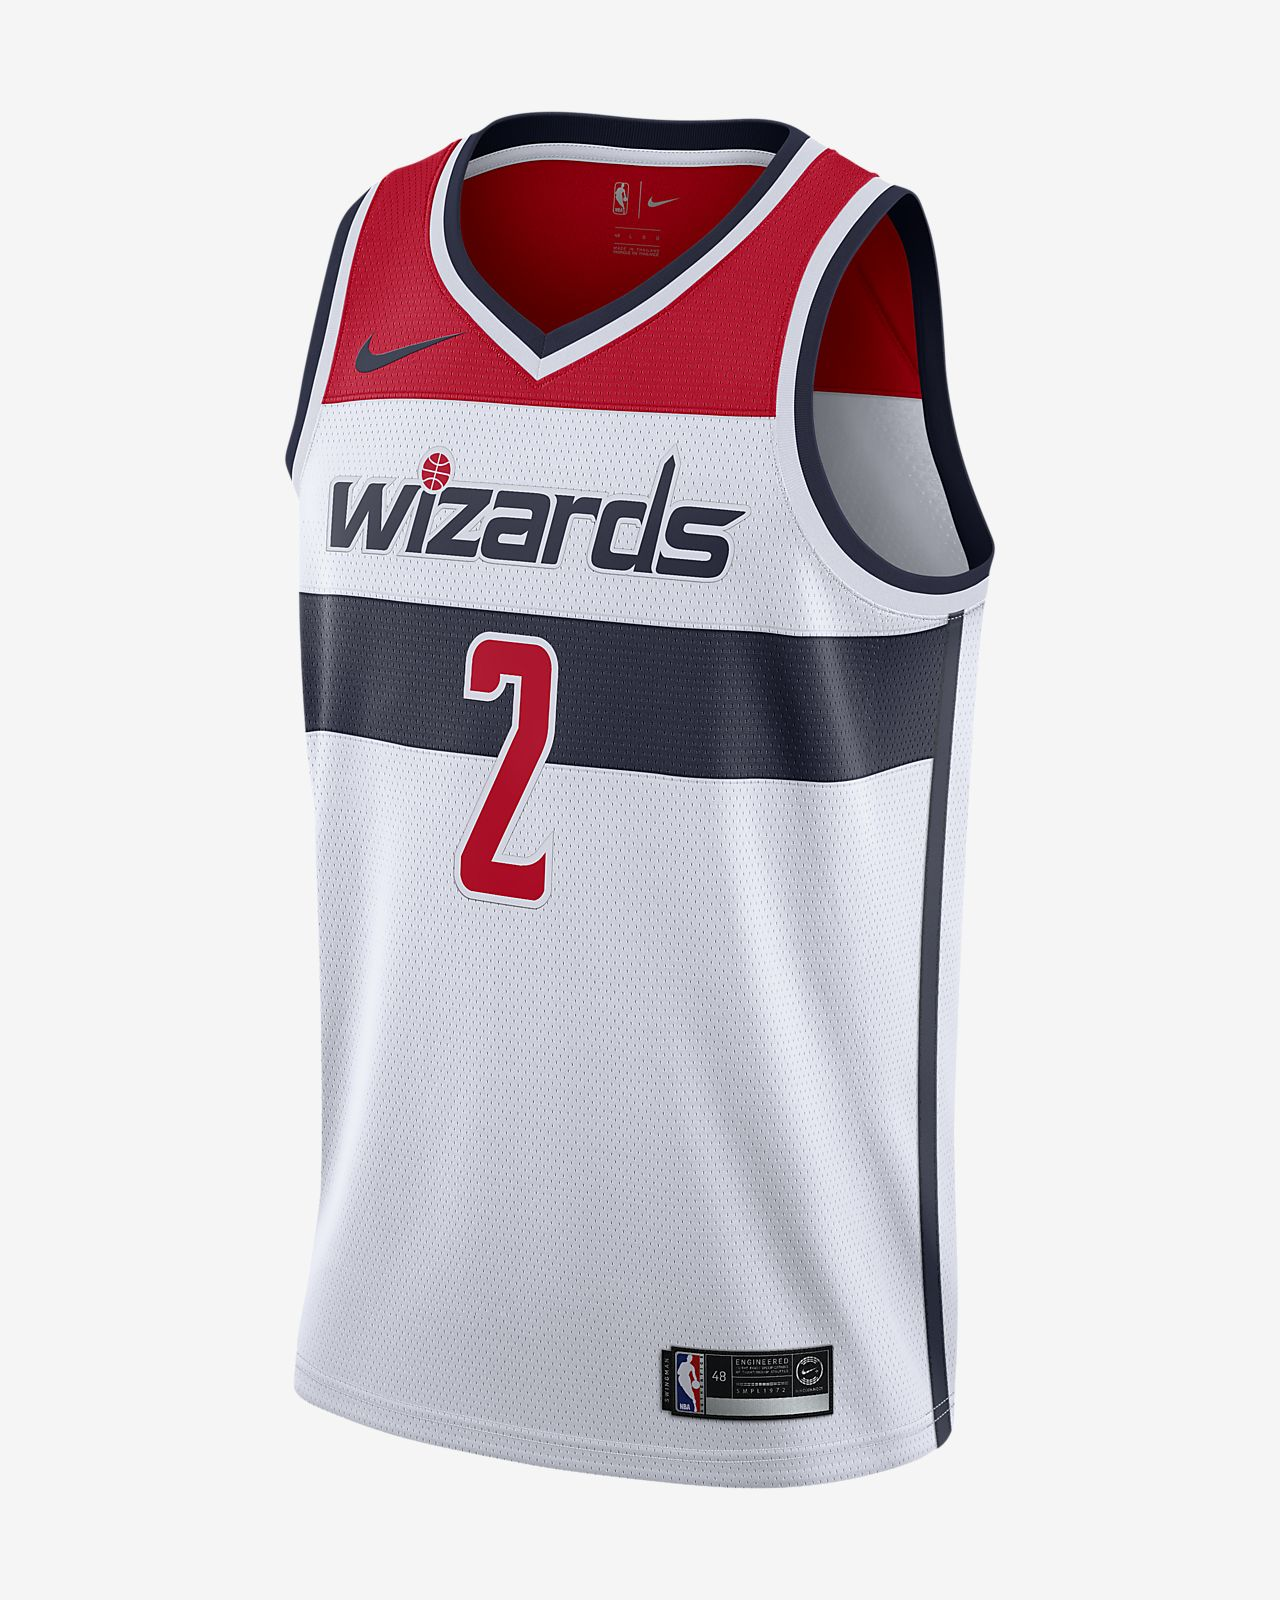 af4e74cbeabf Men s Nike NBA Connected Jersey. John Wall Association Edition Swingman (Washington  Wizards)